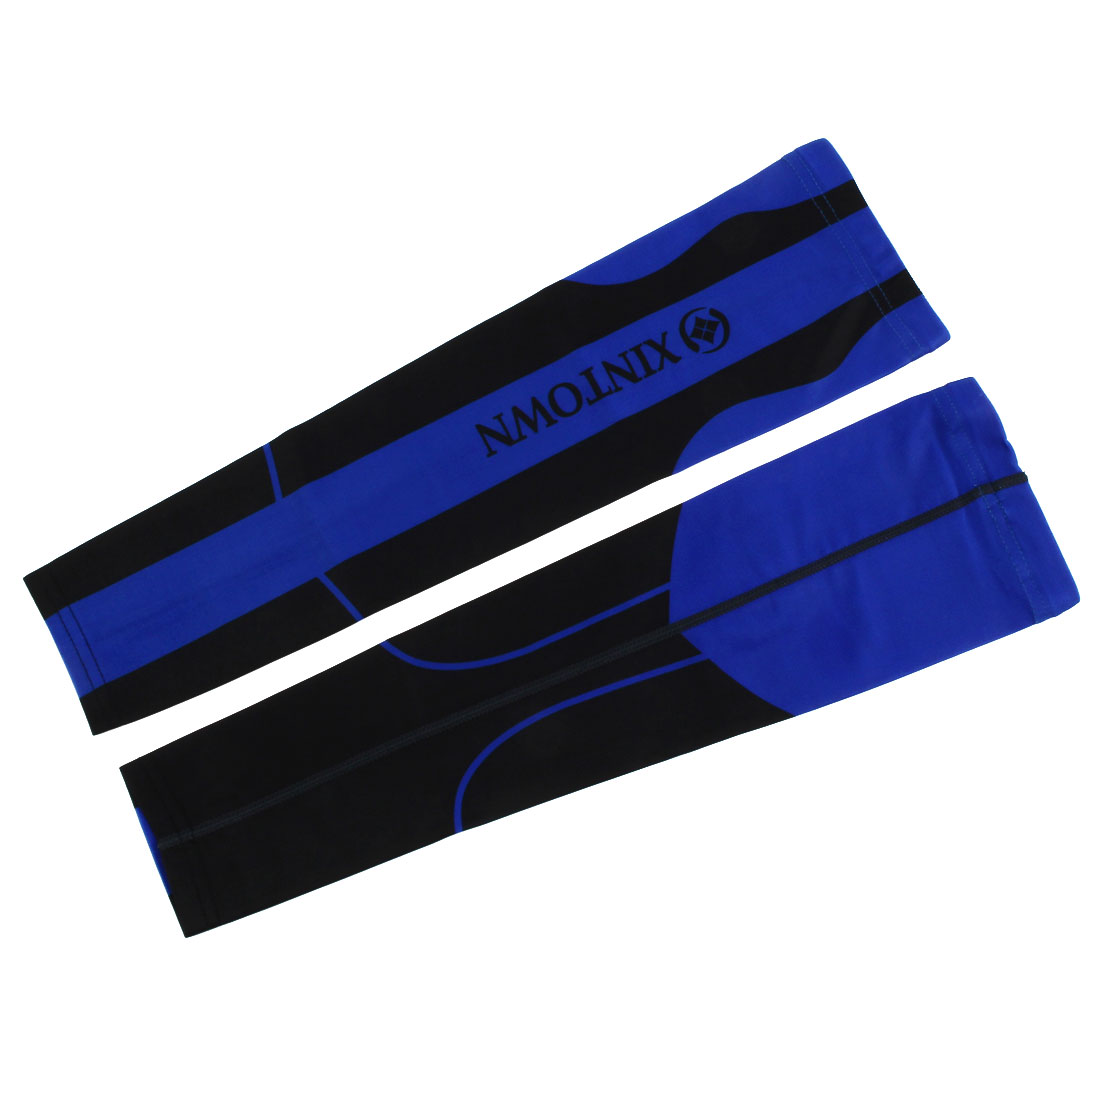 XINTOWN Authorized Cooler Band Arm Sleeves Support Protector Black Blue M Pair